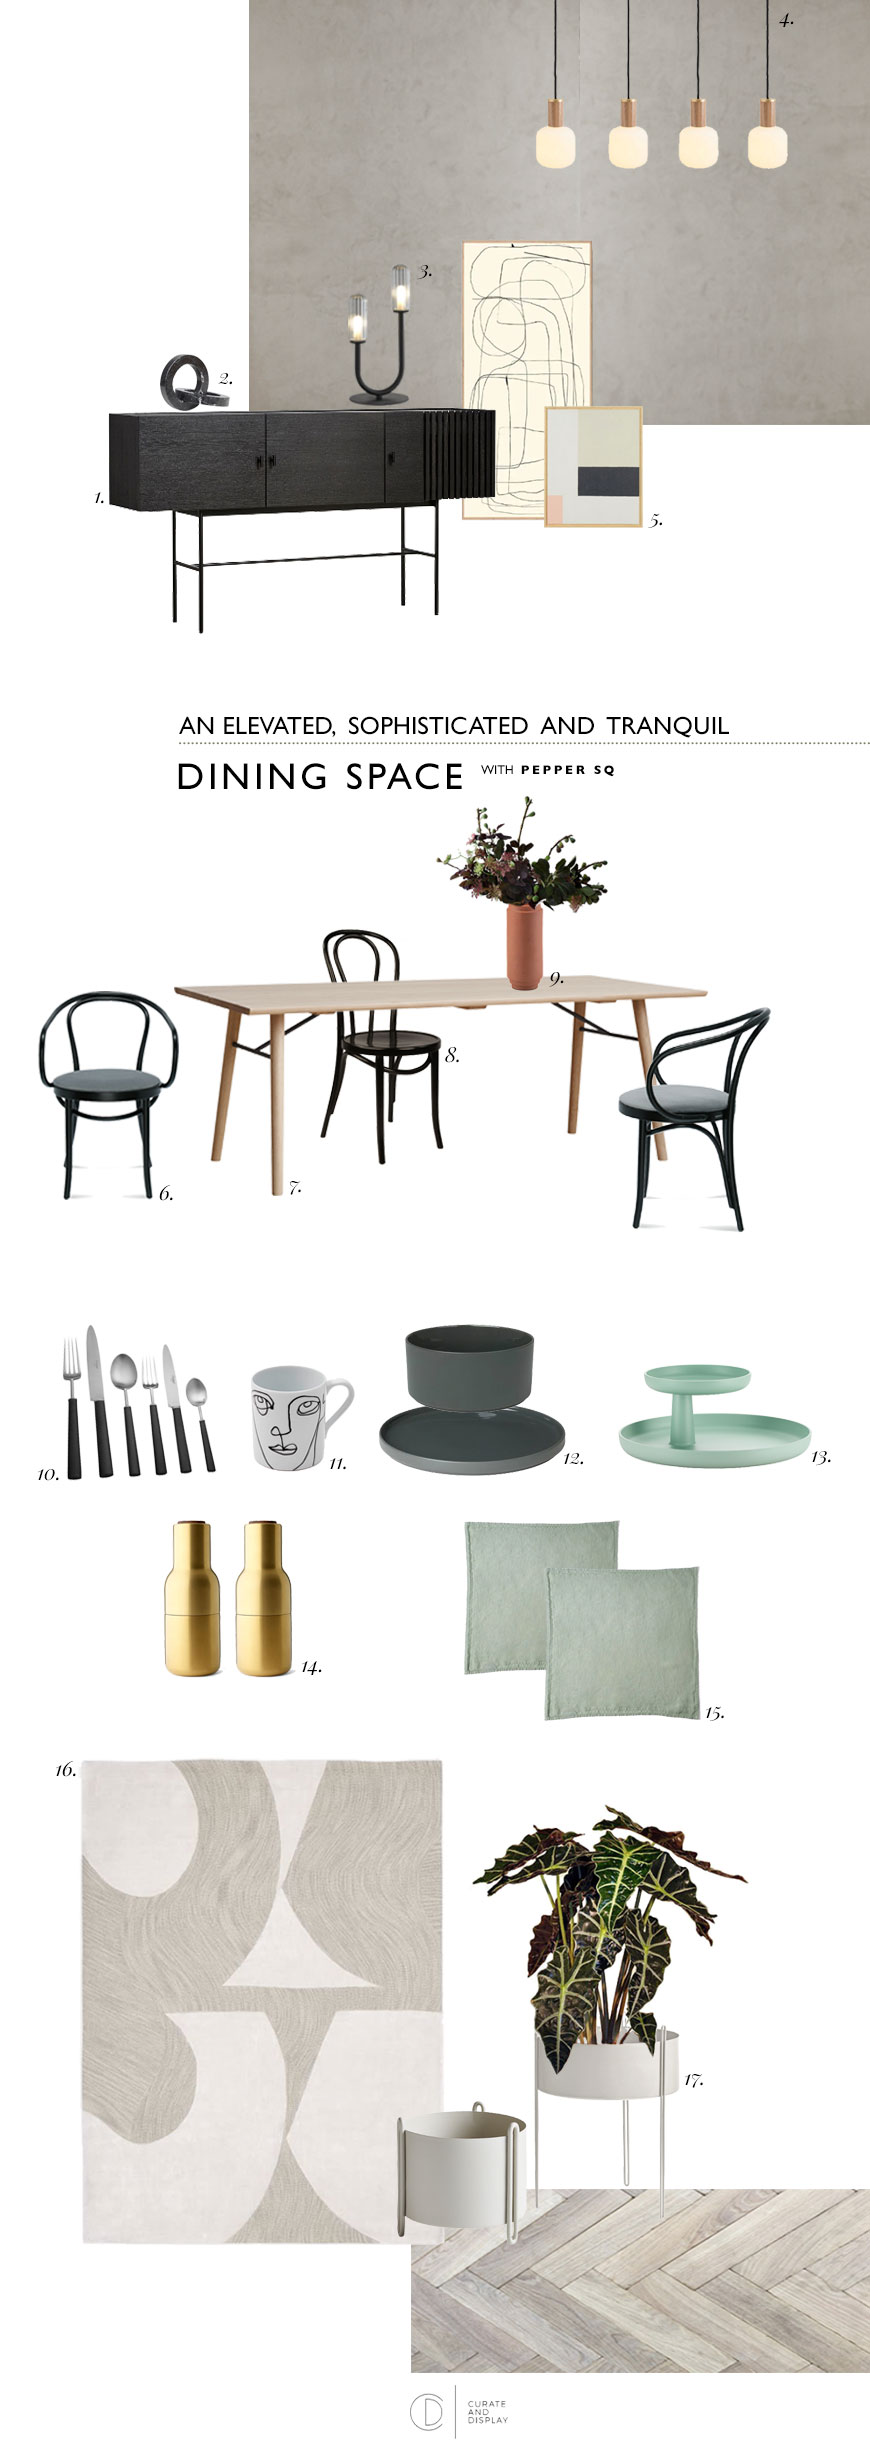 Pepper_Sq_Spacemaking_Dining_Room_Tranquil_Dawn_Green-1